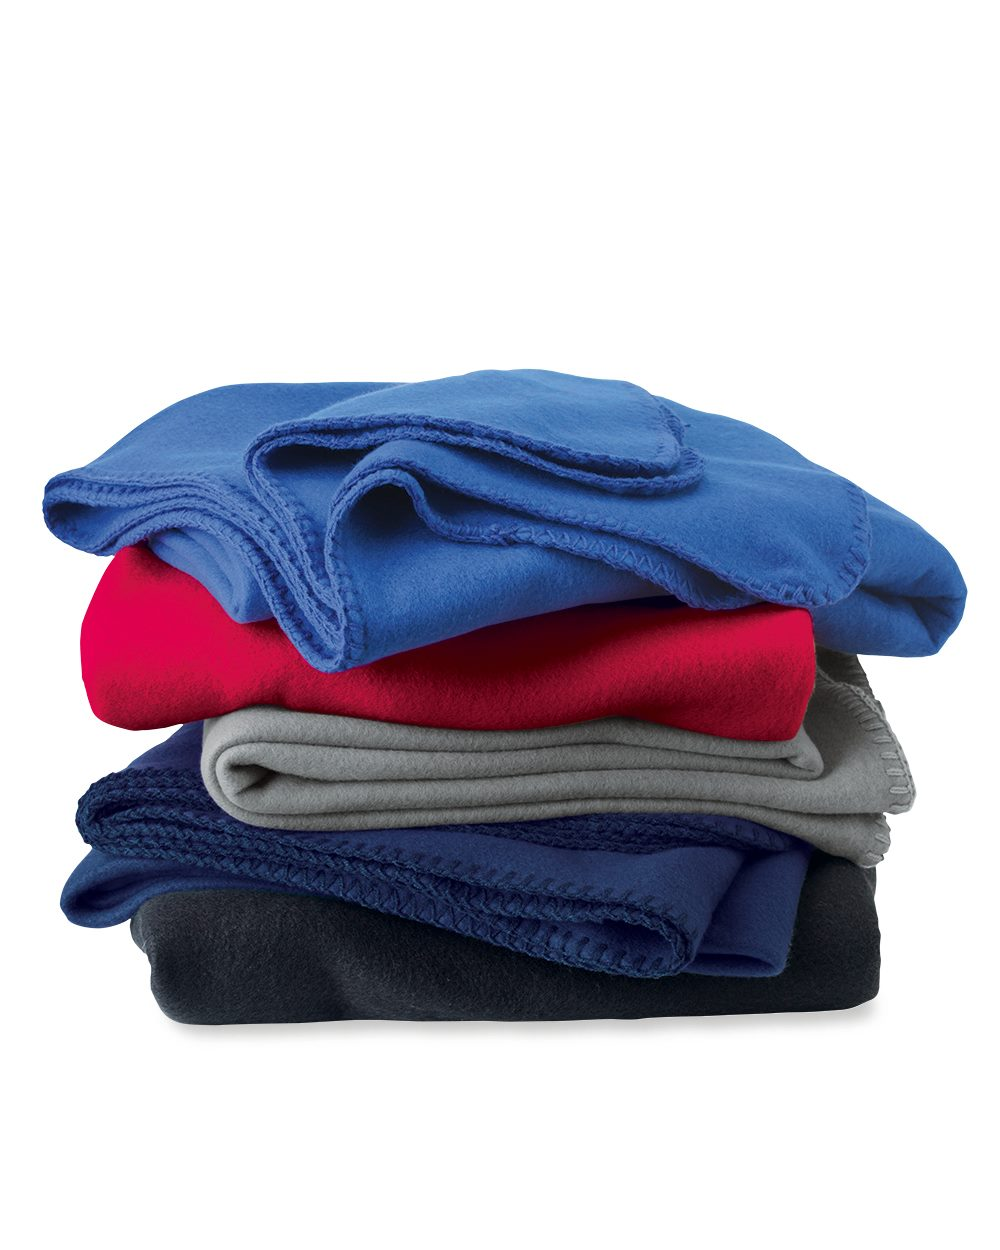 Colorado Clothing 3300 - Promo Fleece Throw